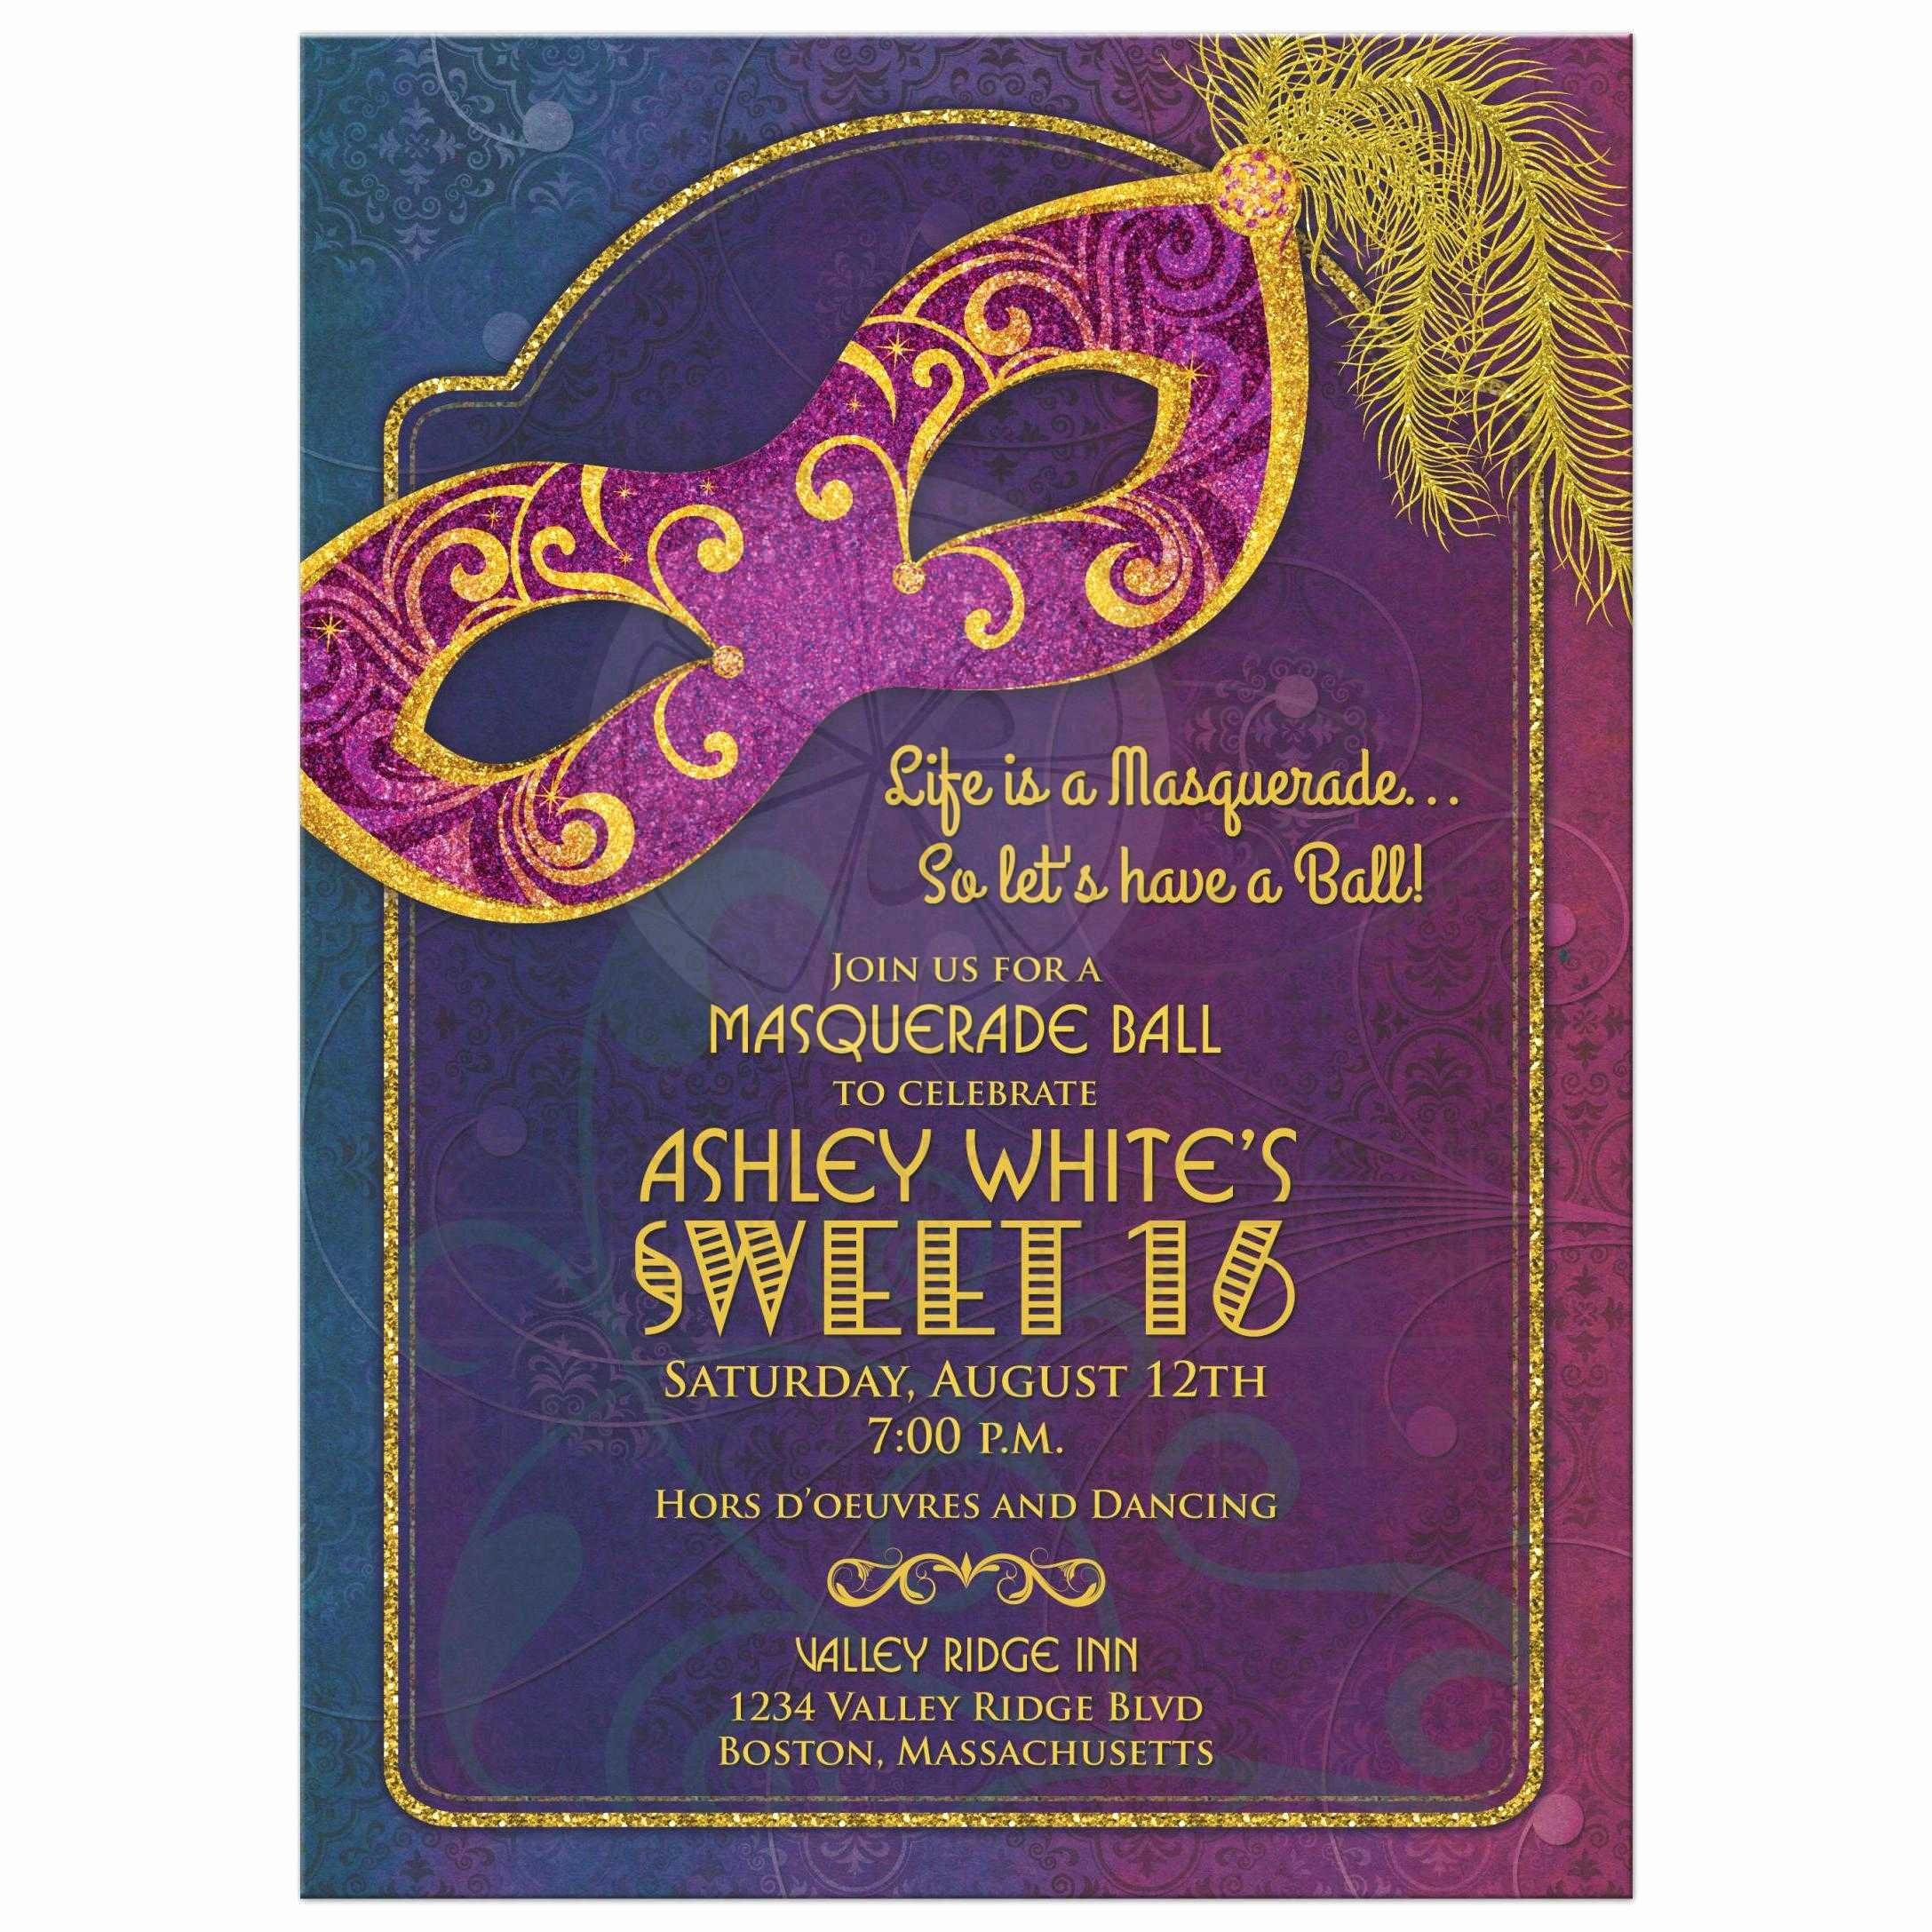 Masquerade Ball Invitations Wording Unique Masquerade Ball Sweet 16 Invitation